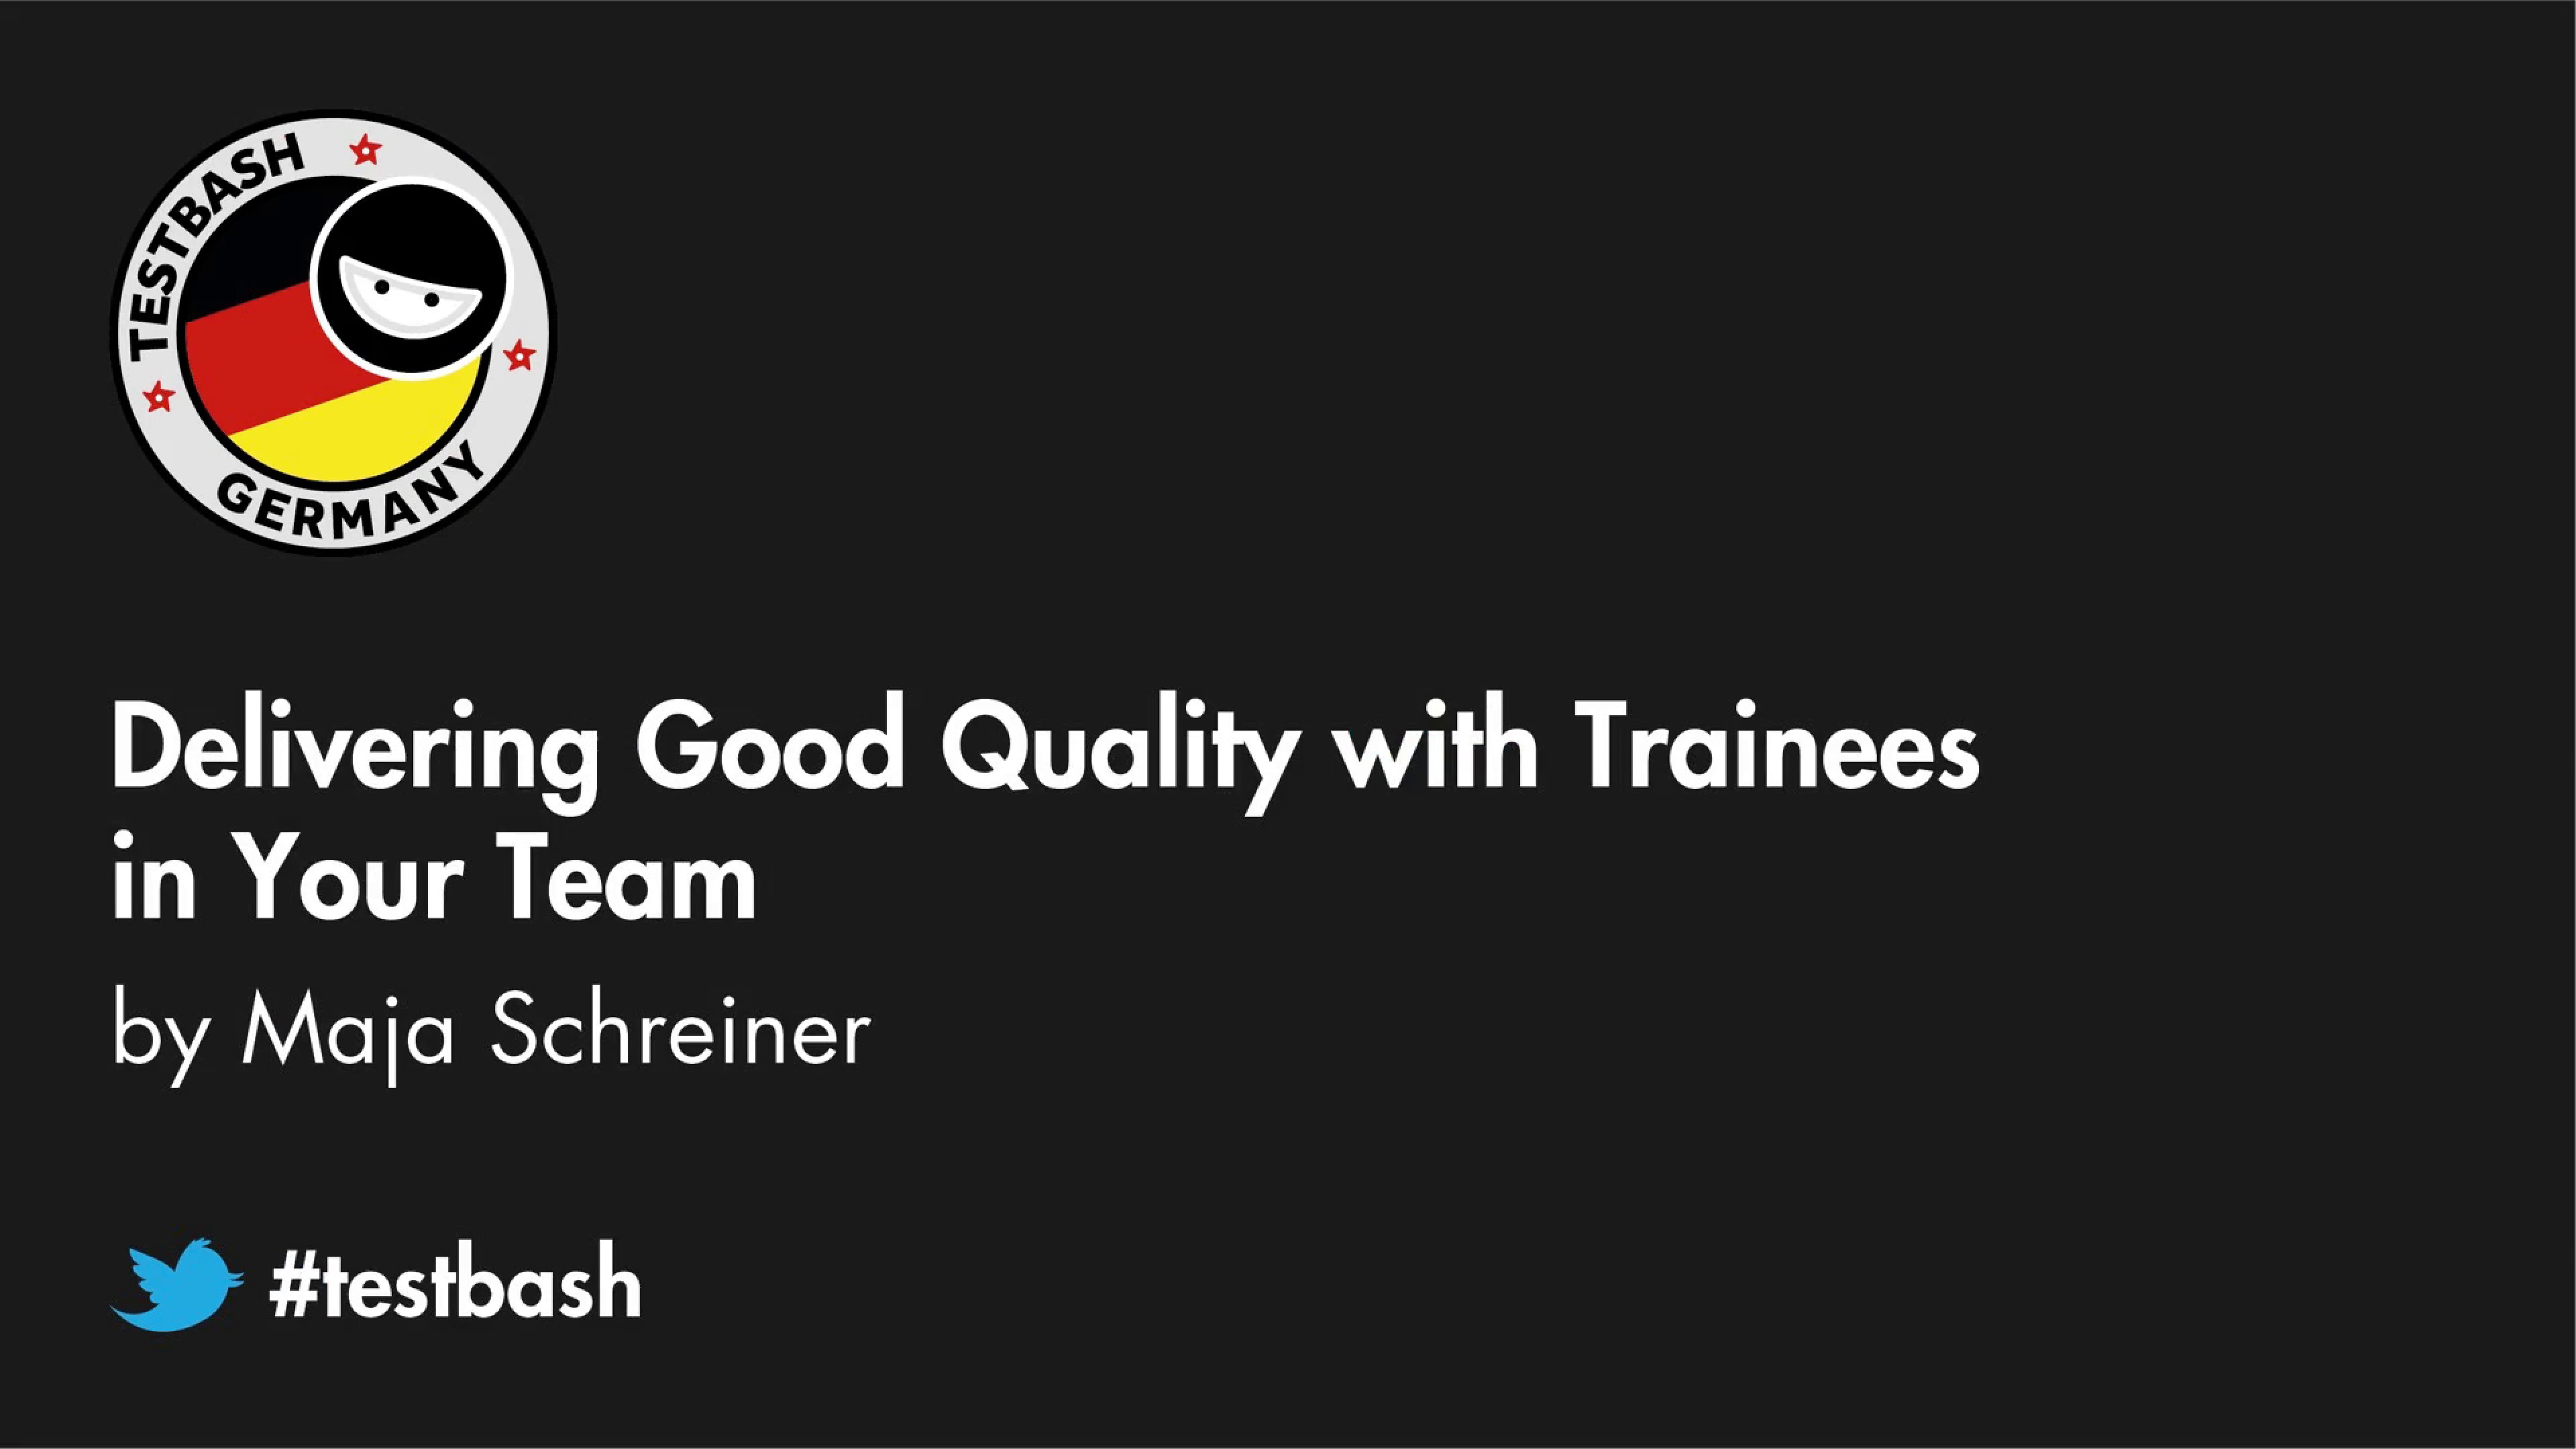 Delivering Good Quality With Trainees In Your Team - Maja Schreiner